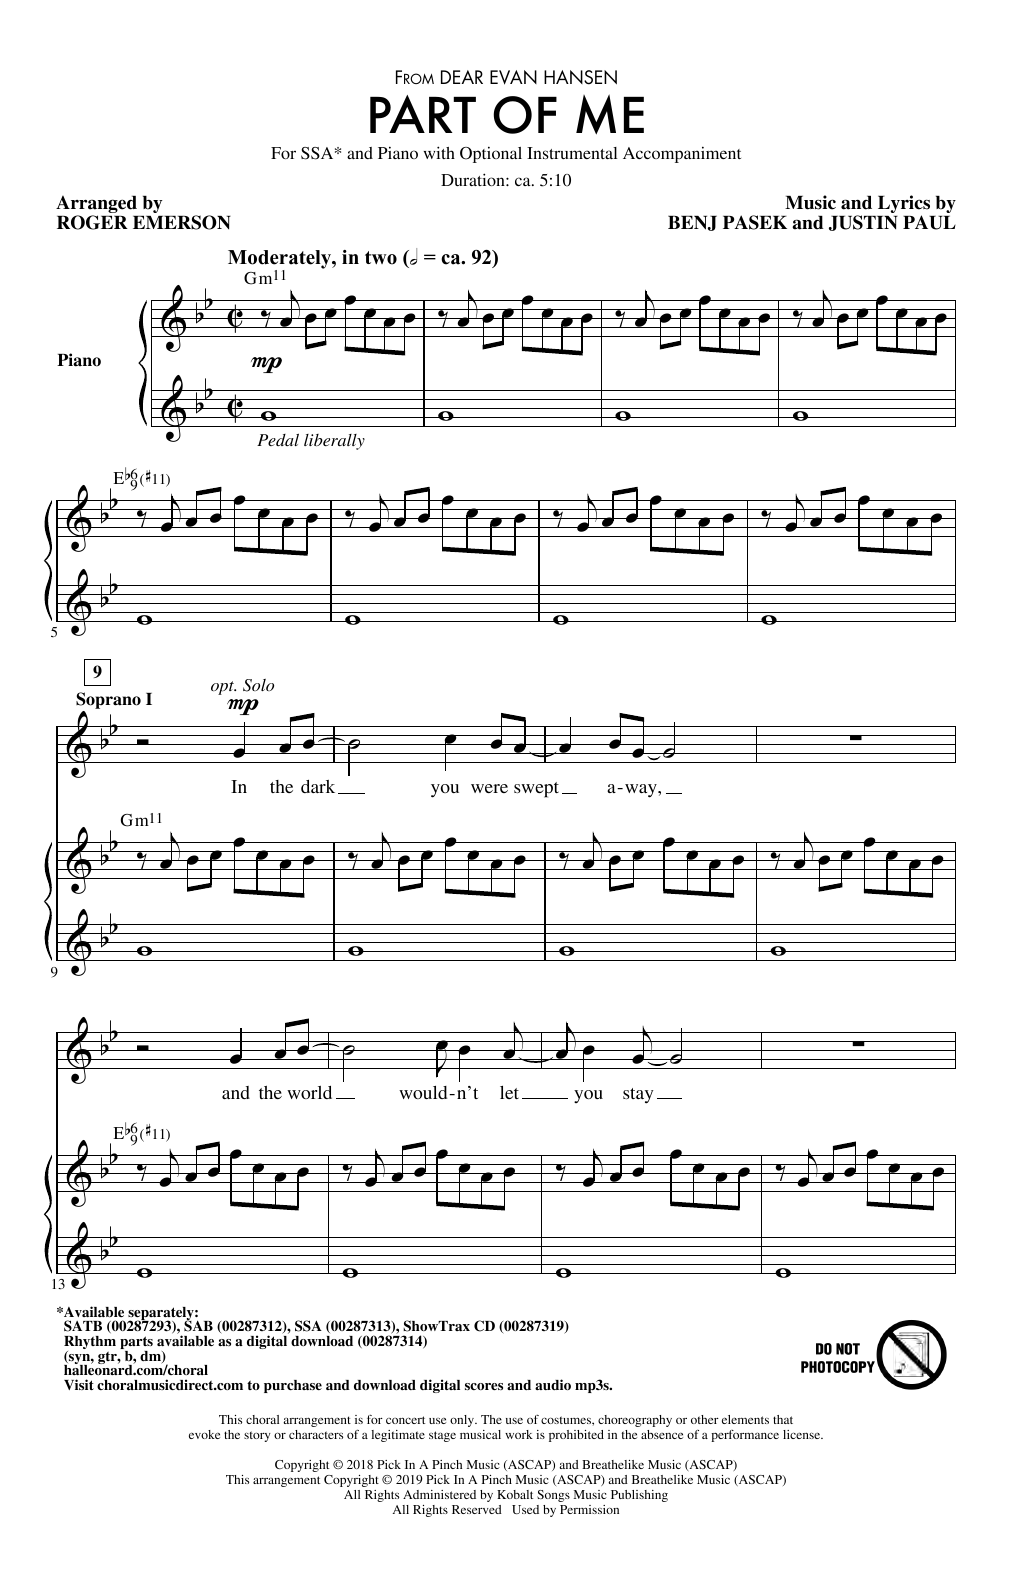 Pasek & Paul Part Of Me (from Dear Evan Hansen) (arr. Roger Emerson) sheet music notes and chords